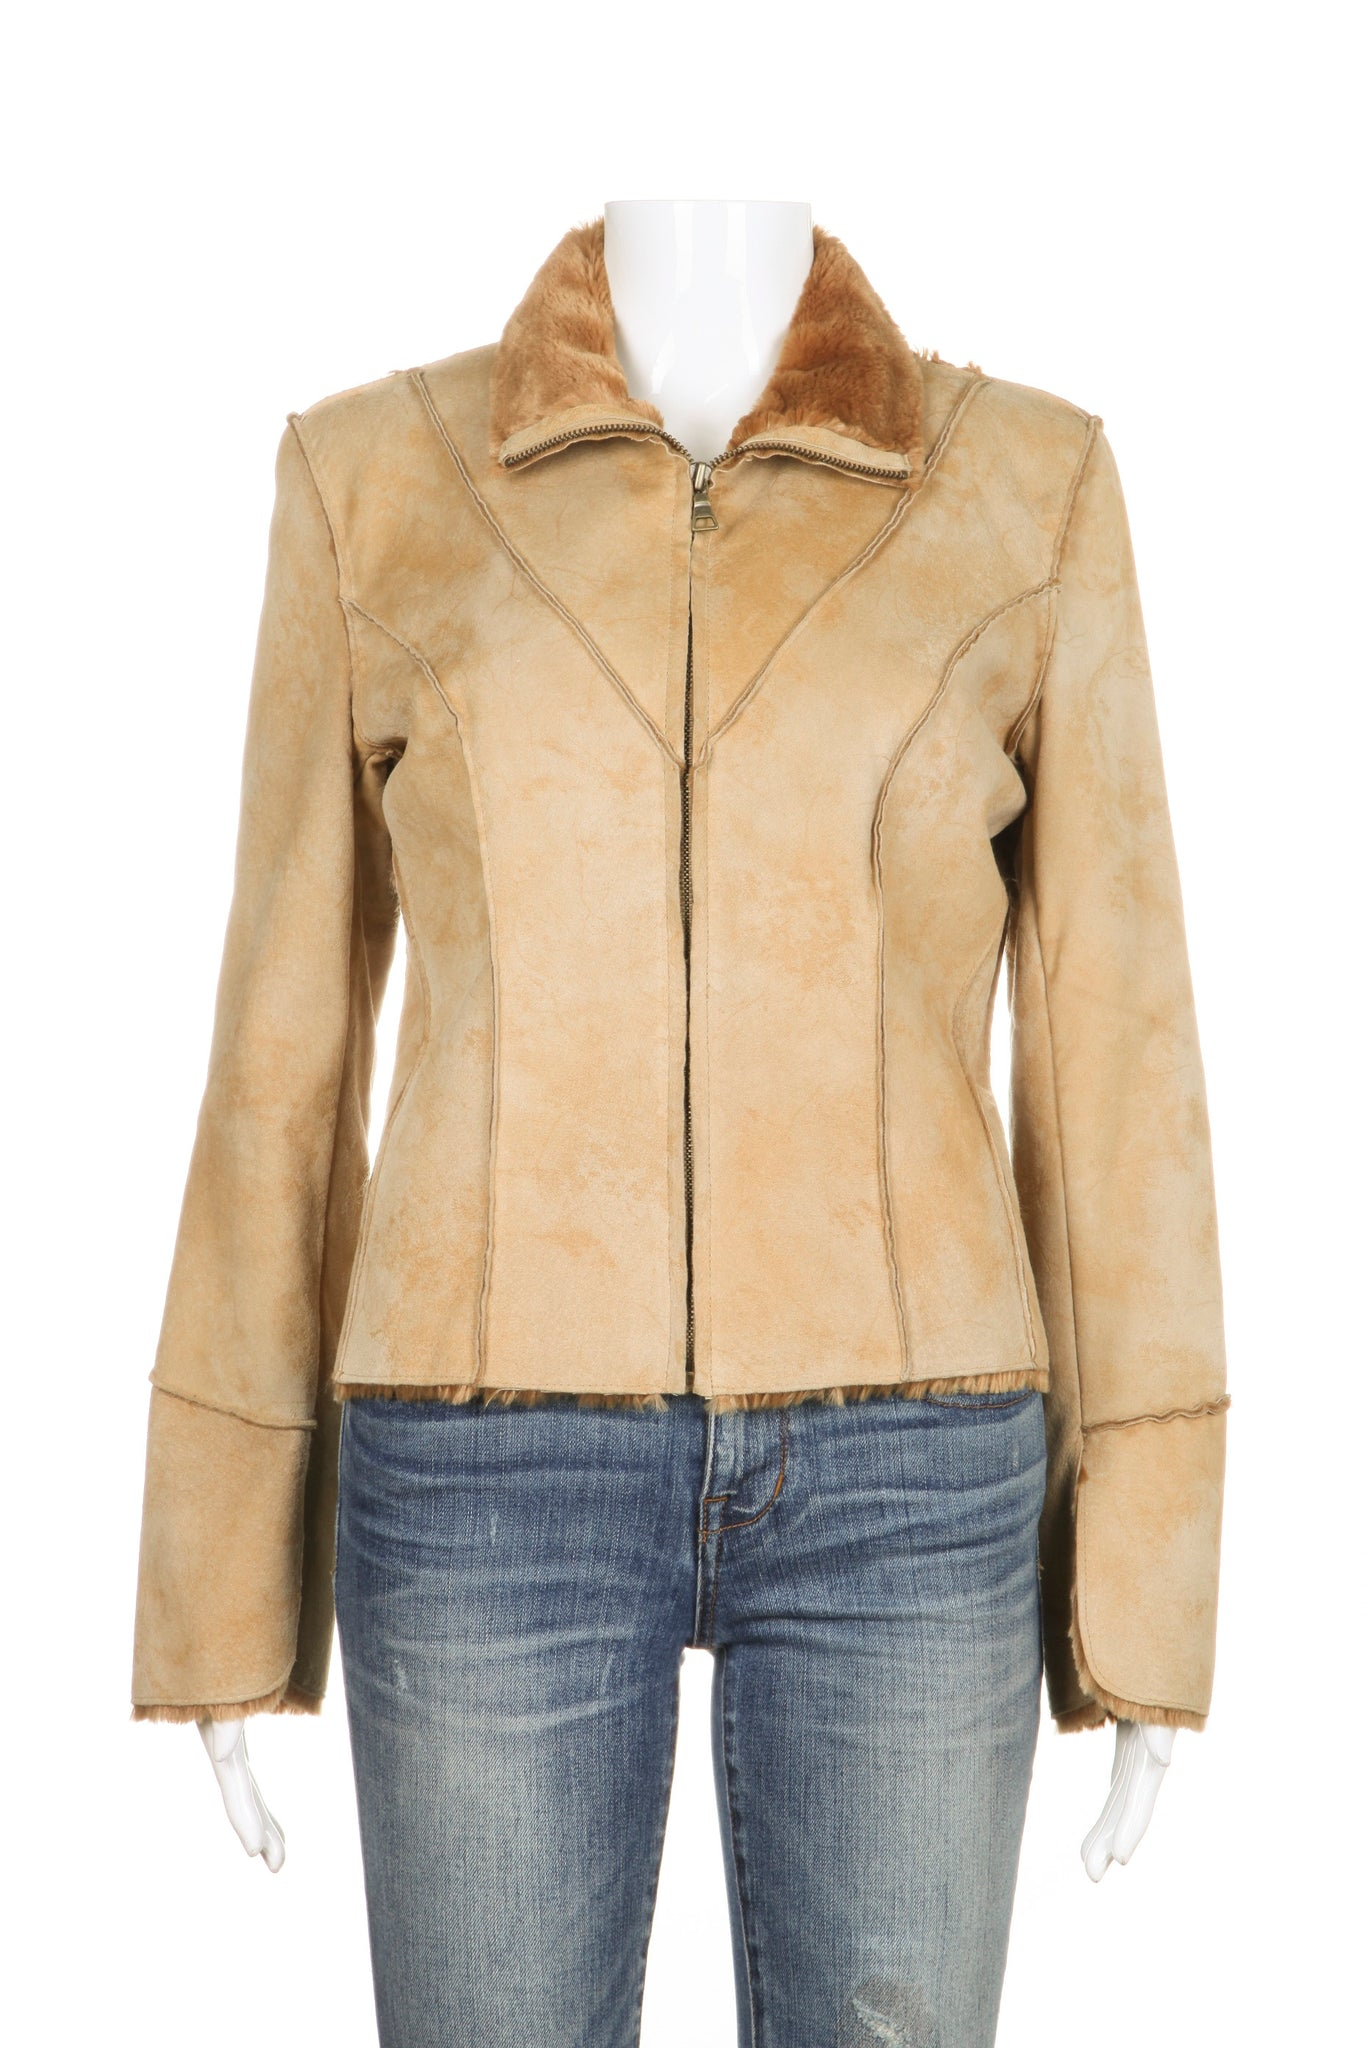 GUESS Jacket Suede Leather Faux Fur Lined Size S